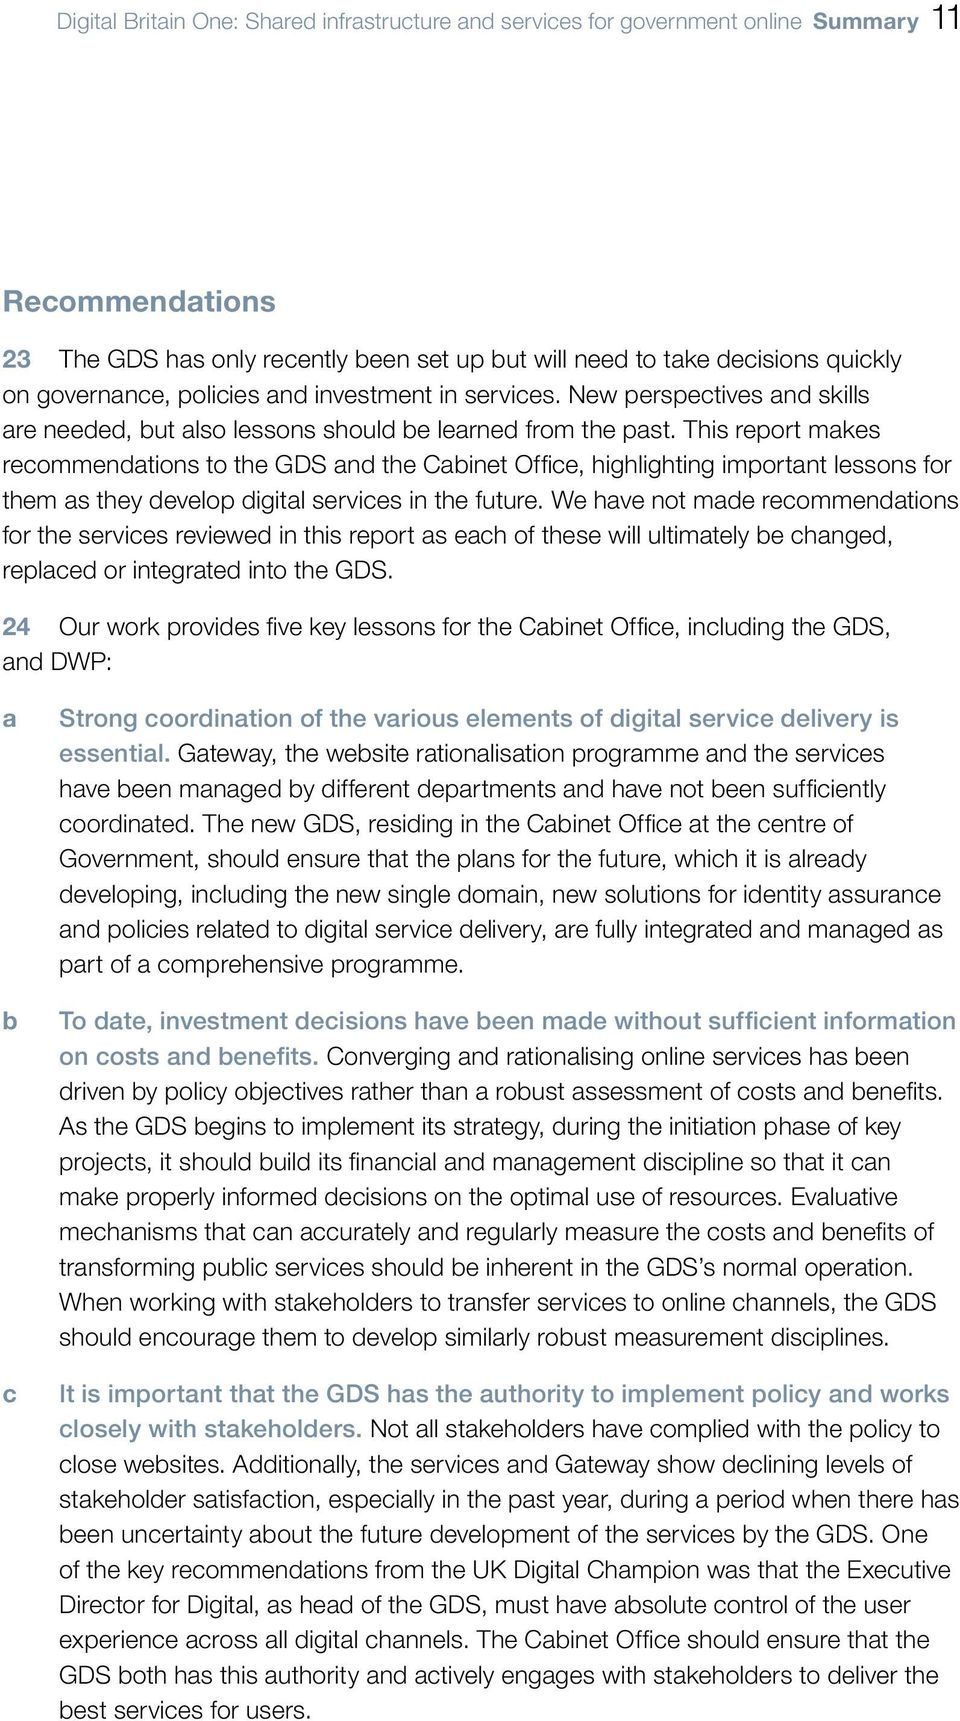 This report makes recommendations to the GDS and the Cabinet Office, highlighting important lessons for them as they develop digital services in the future.